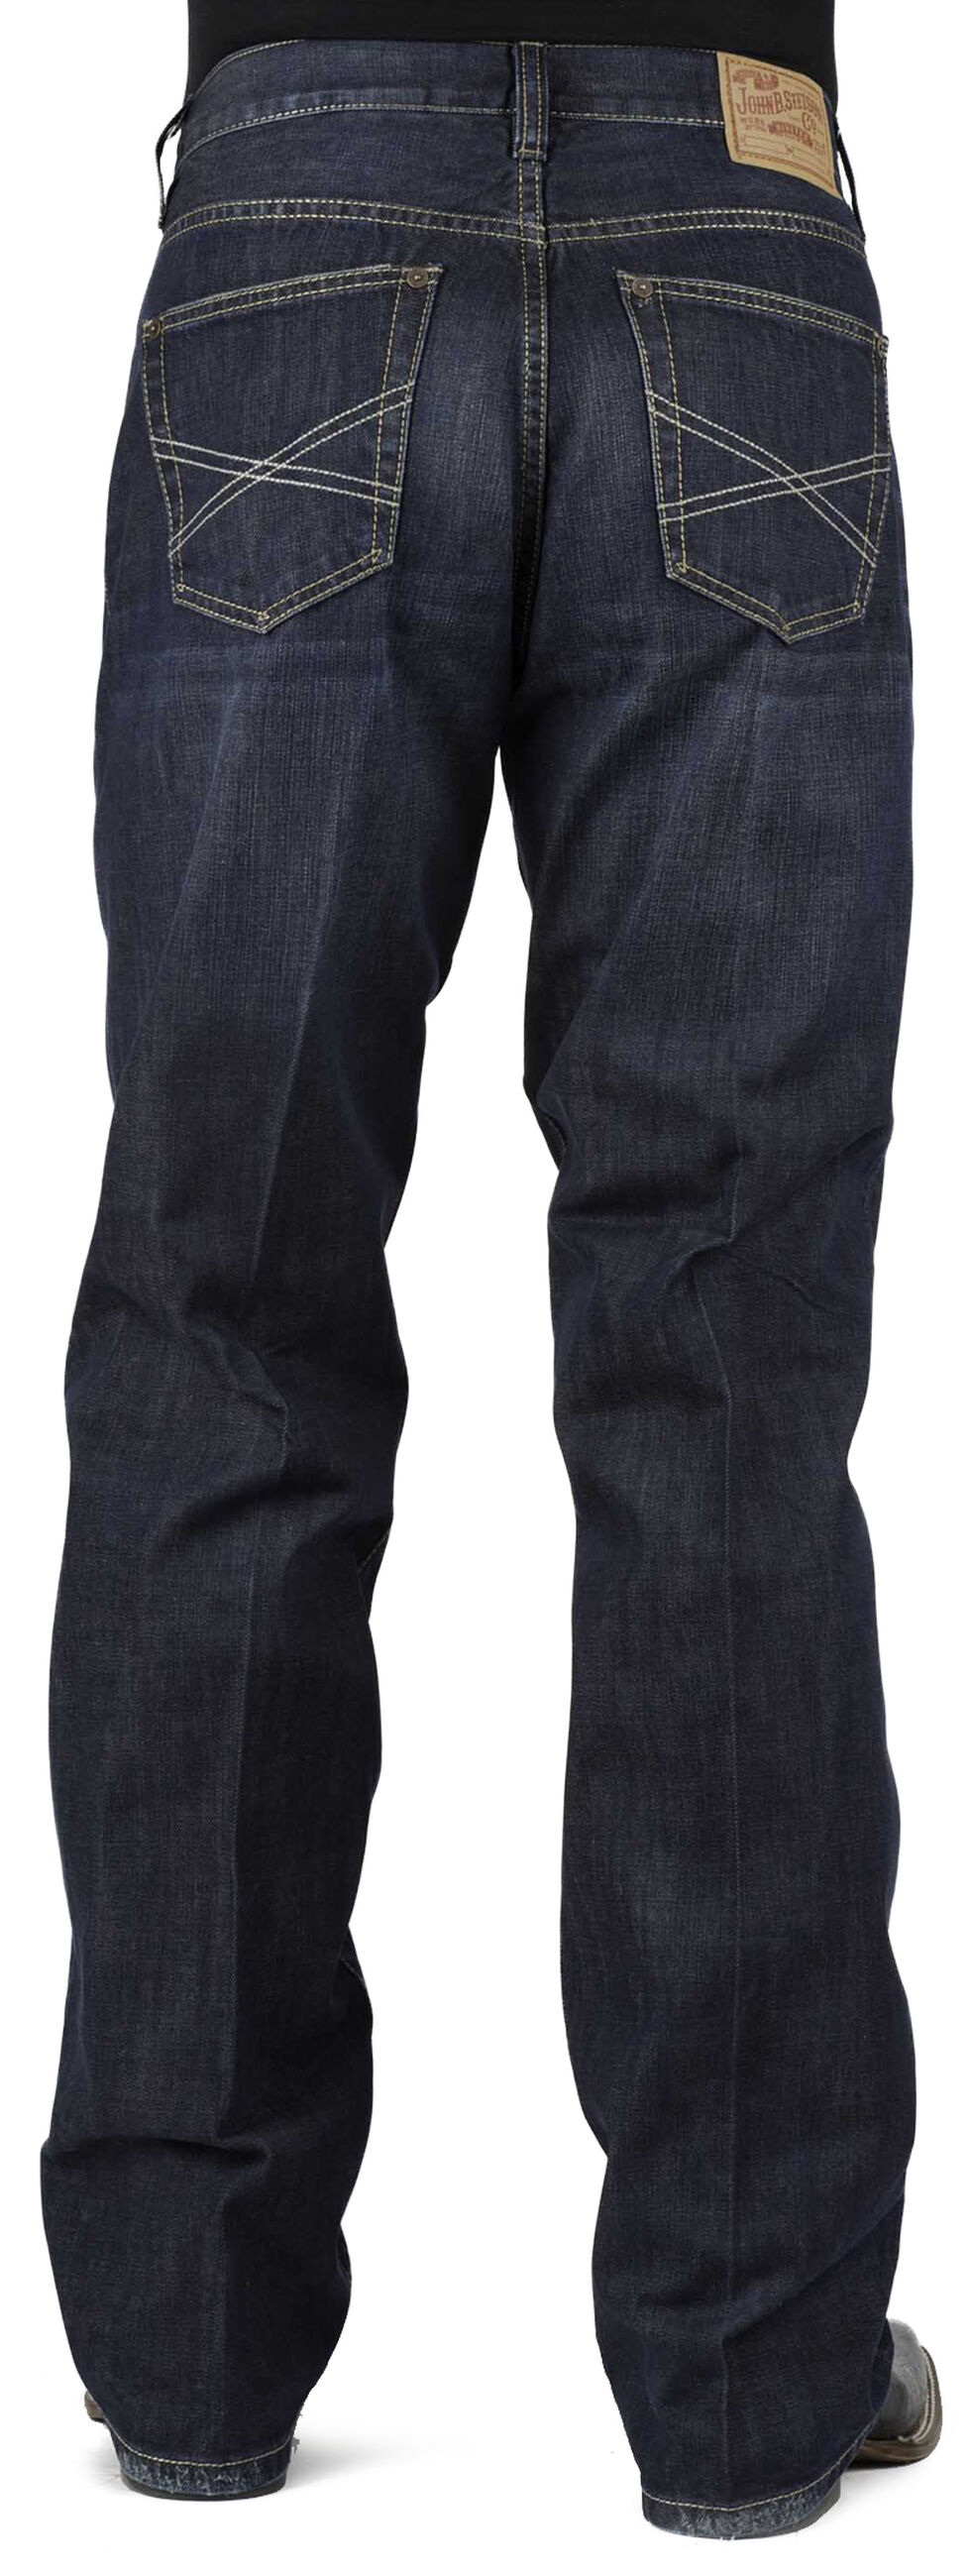 Stetson 1312 Relaxed Fit Jeans with Flag Detail - Boot Cut, Denim, hi-res